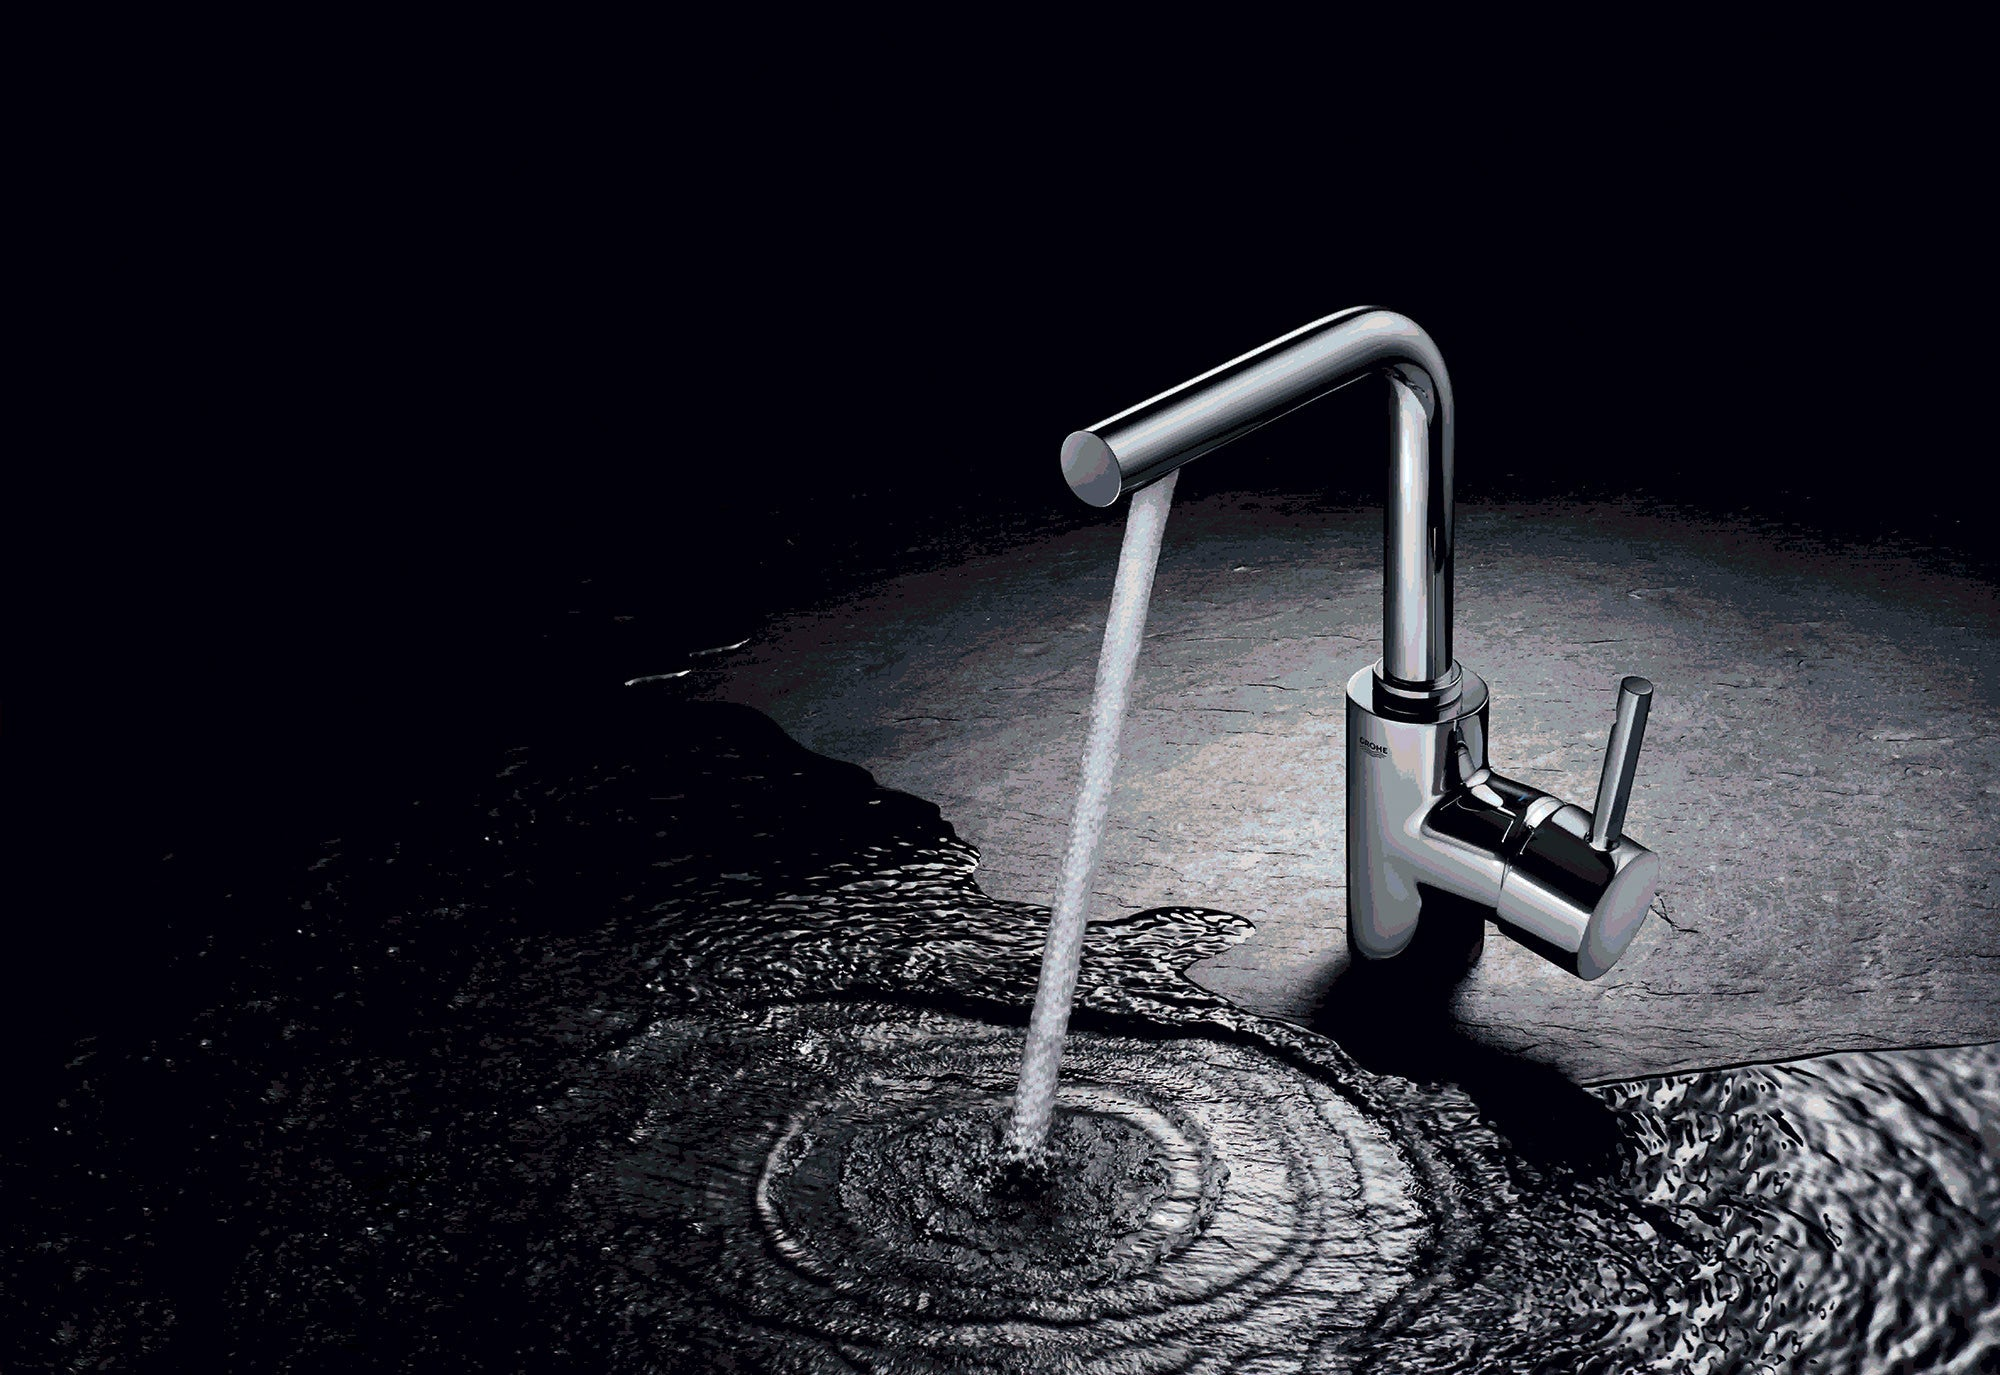 Plumbing Fixtures and Faucets Features, Tips and How-to Information ...